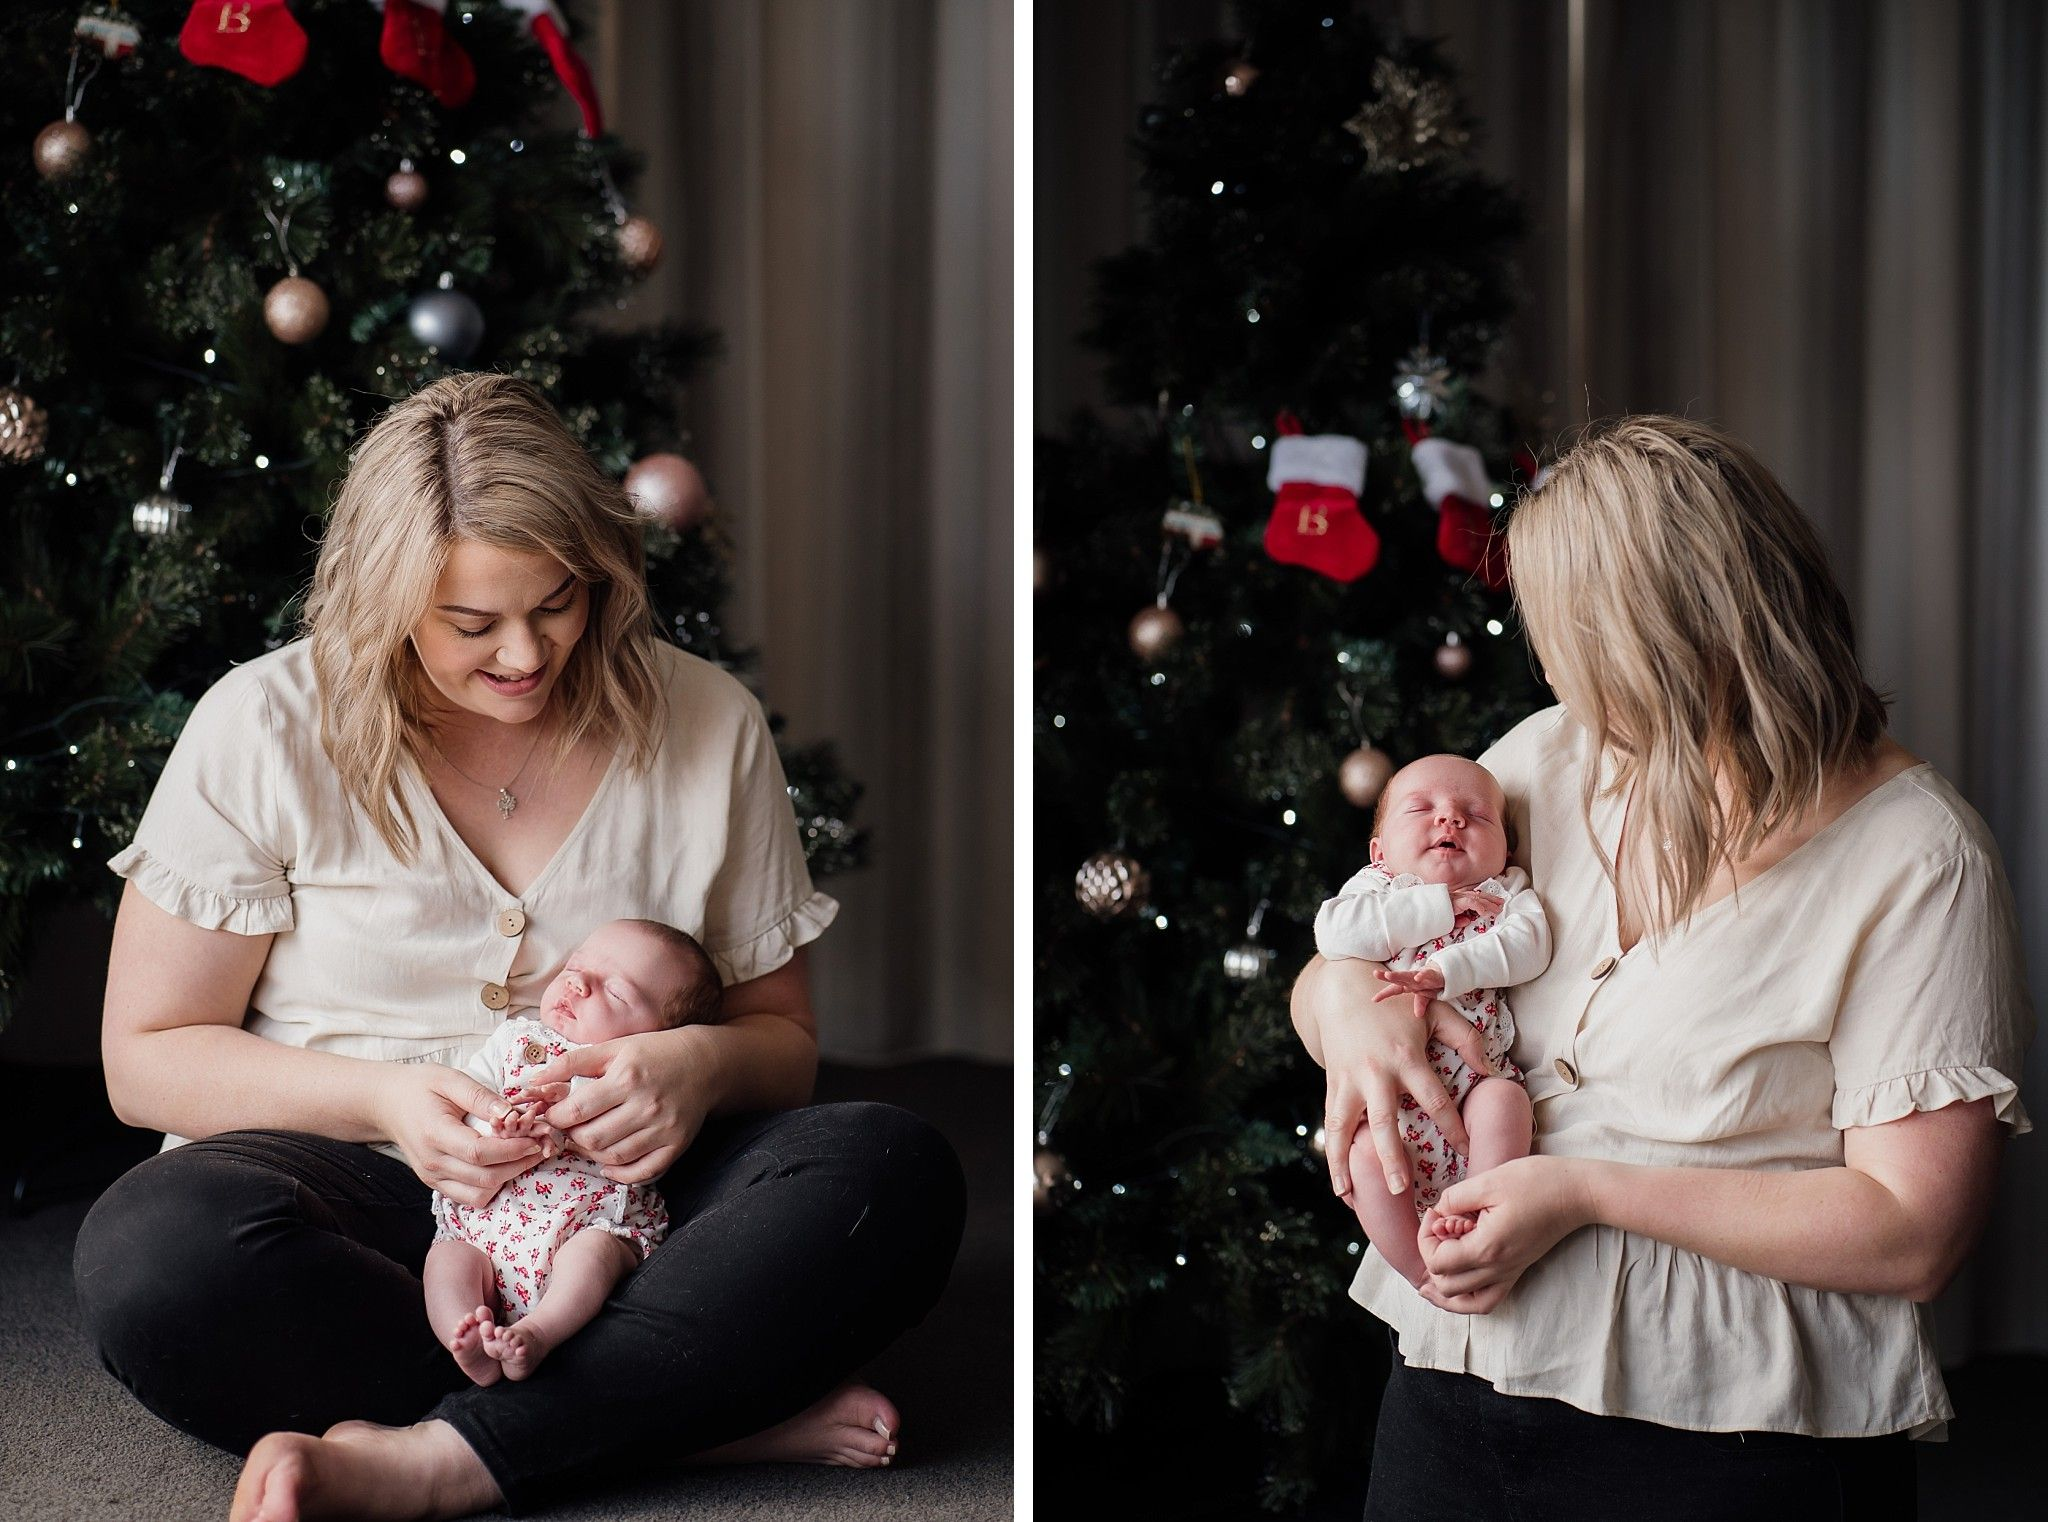 mum and baby girl by christmas tree